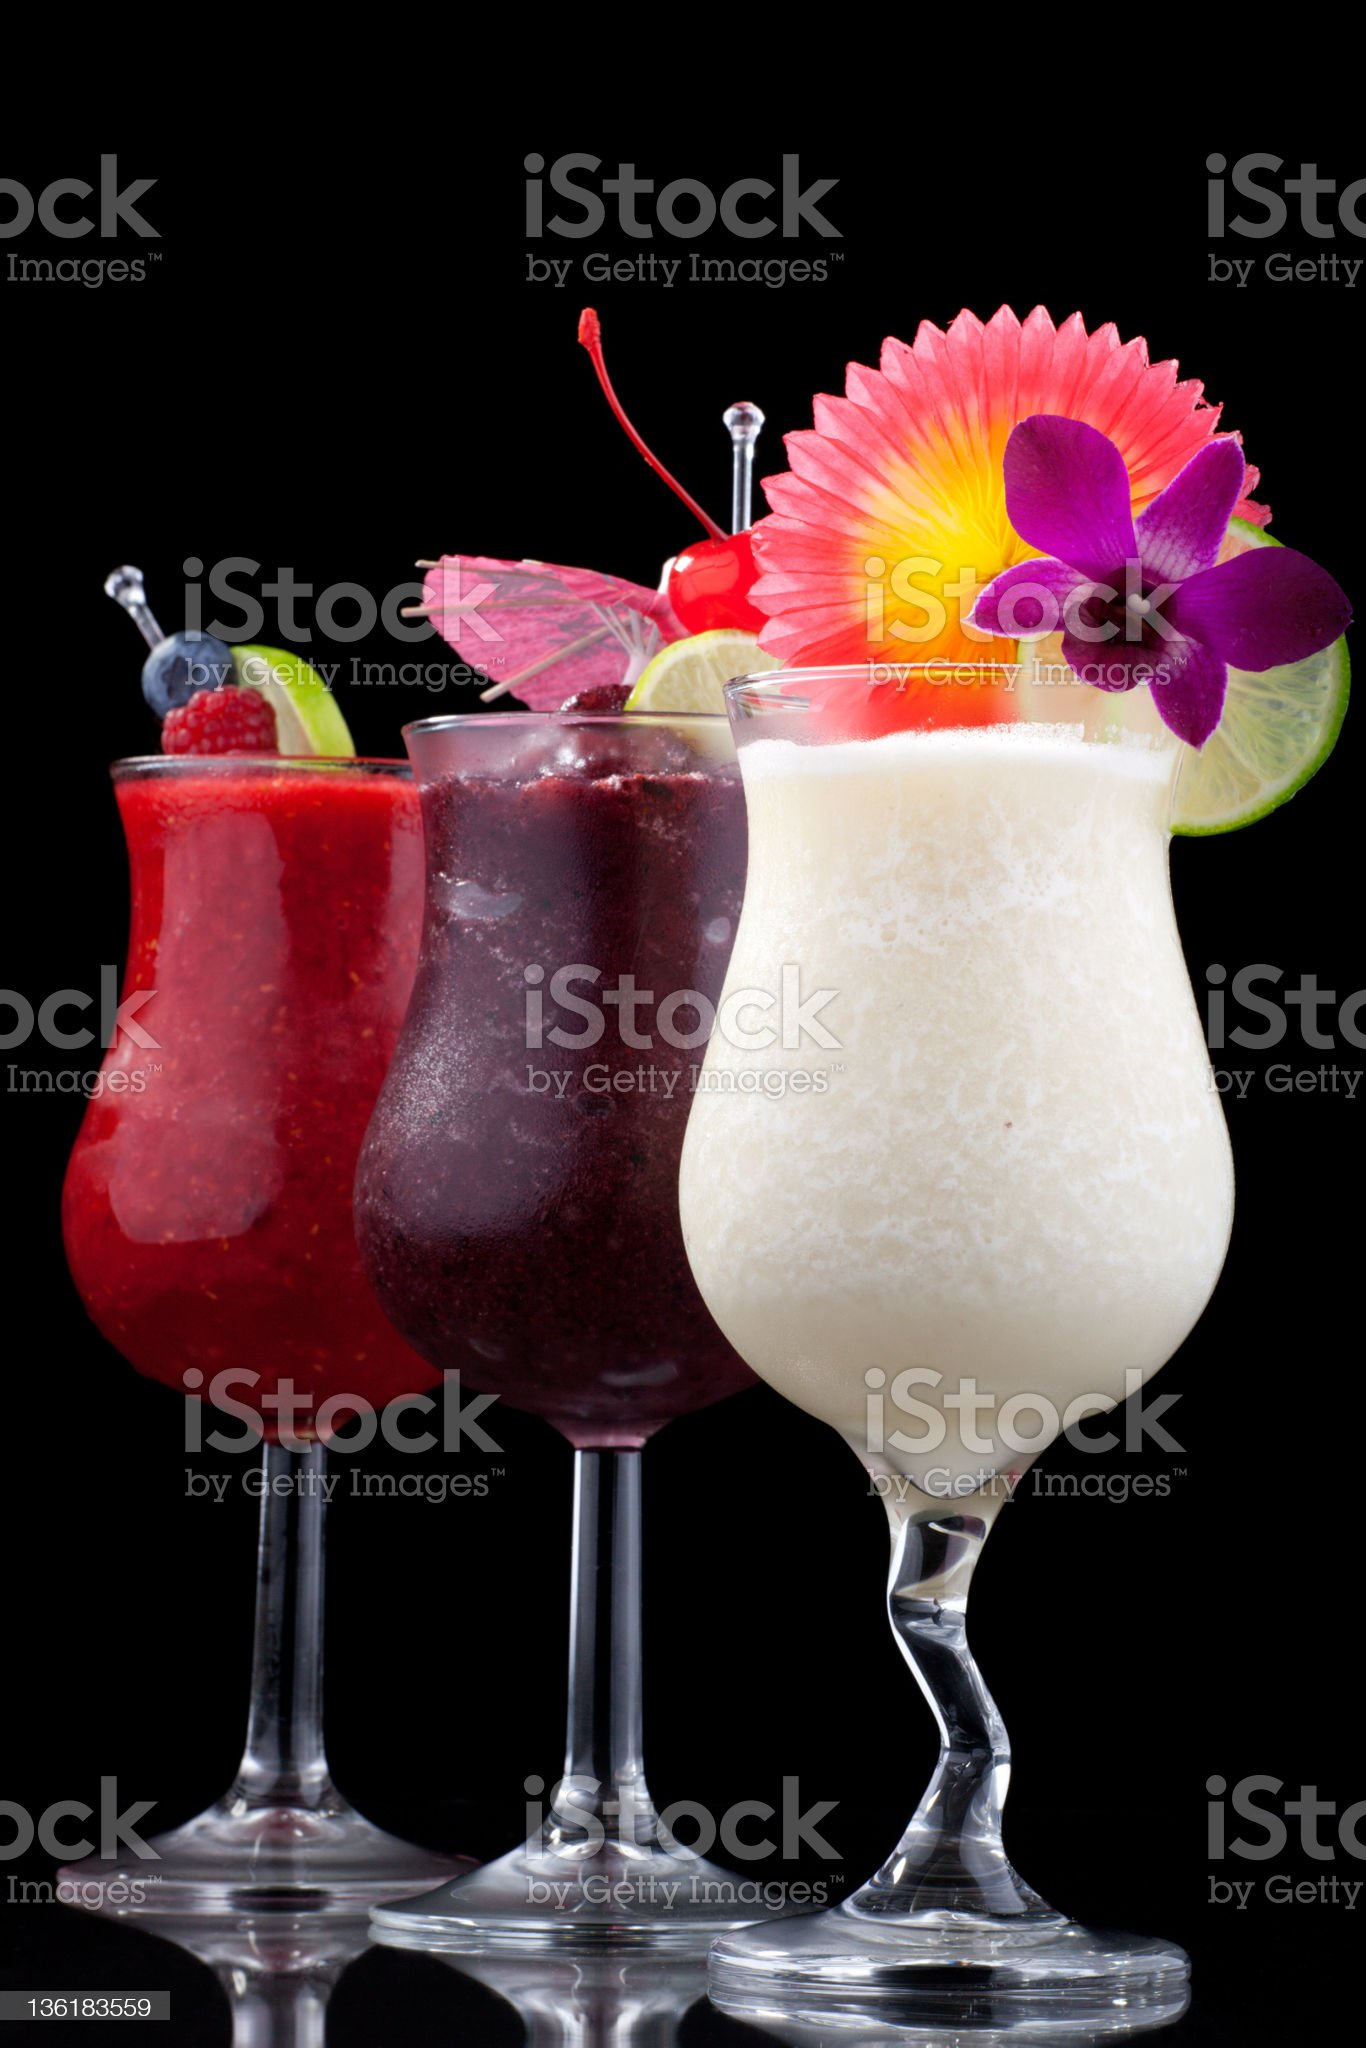 Banana, Blueberry and Raspberry Daiquiri - Most popular cocktails series royalty-free stock photo